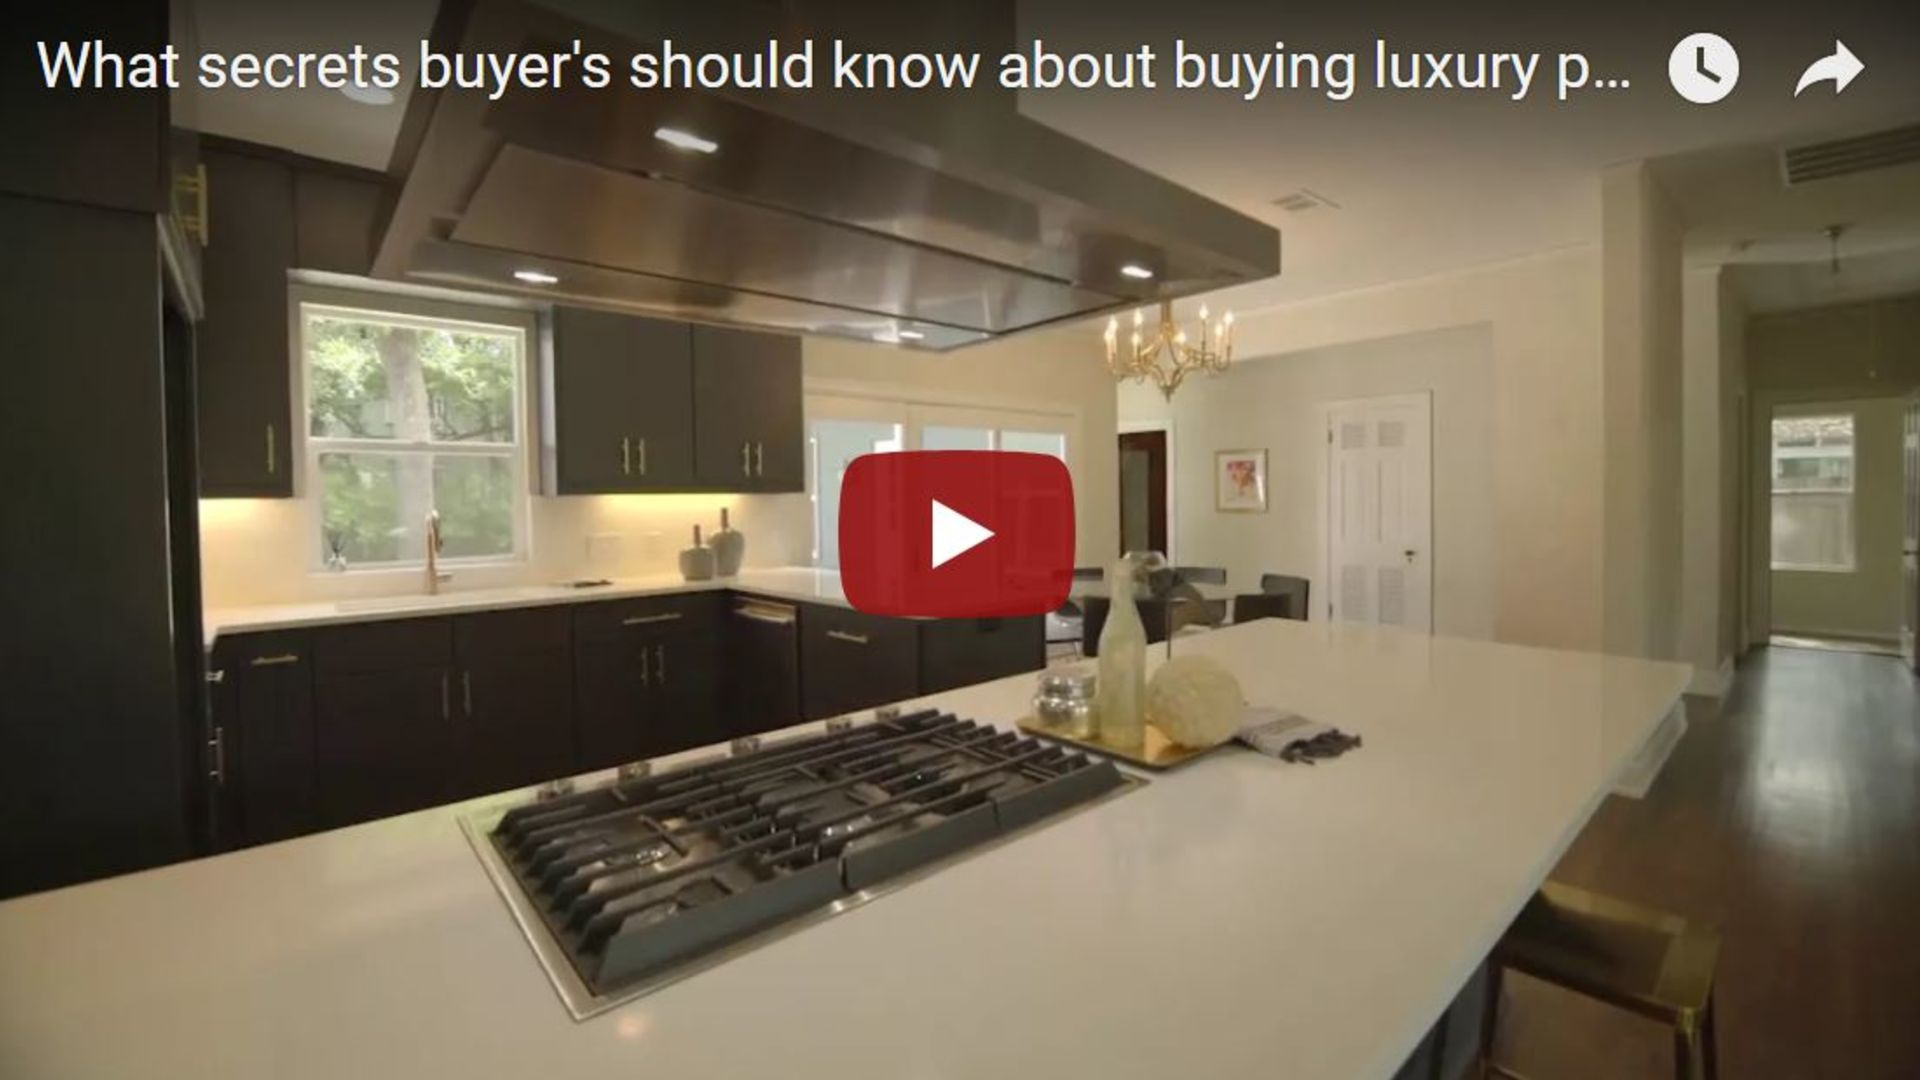 What secrets buyer's should know about buying luxury properties?